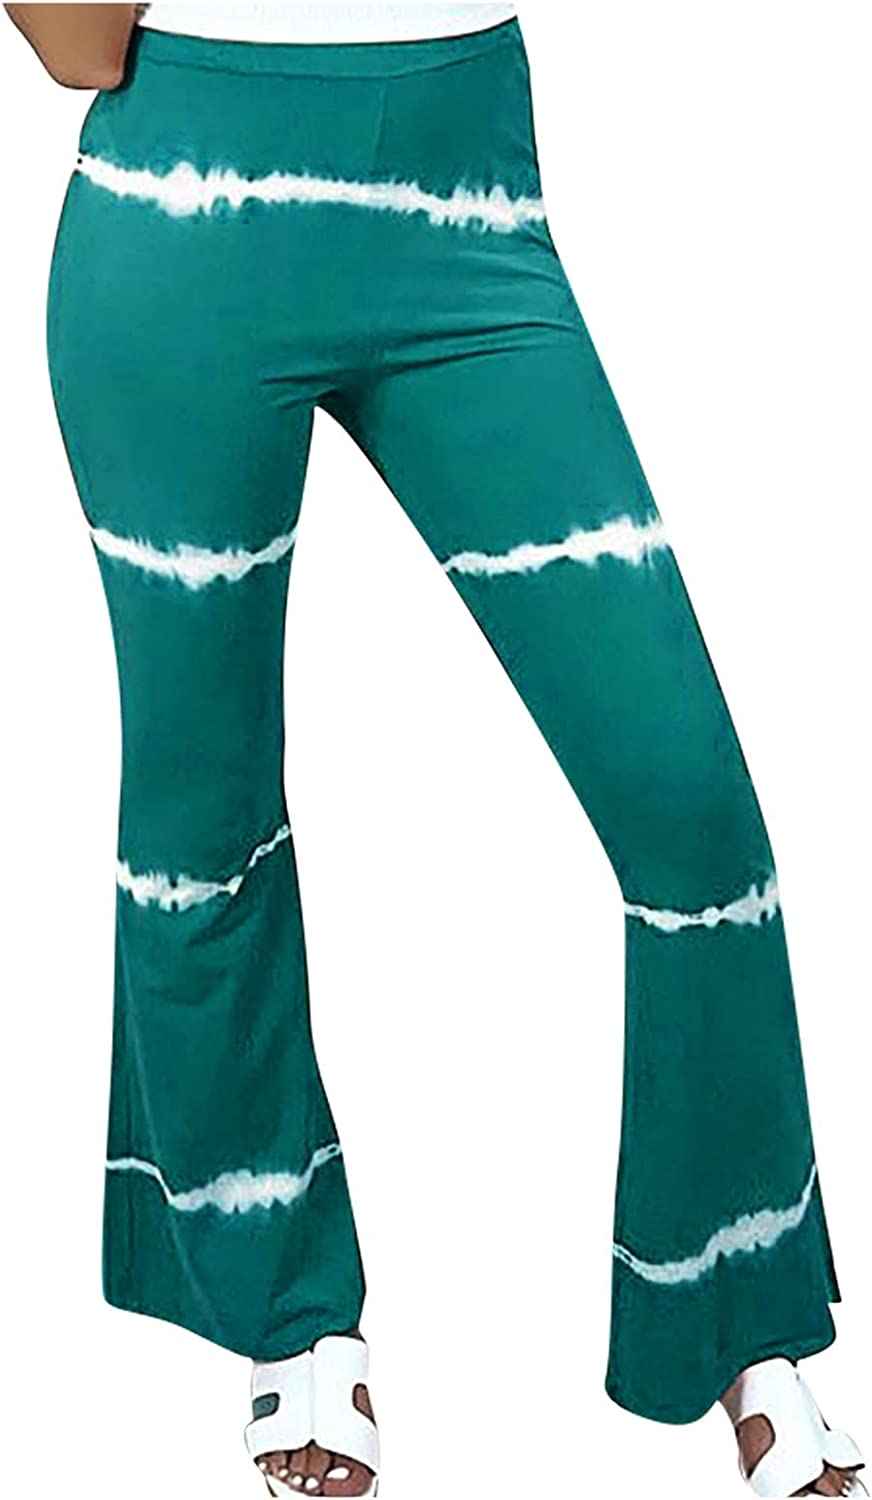 VonVonCo Flare Pants for Women Casual Elastic Girdle Waist Wide Leg Pants Trousers Stretch Printed Horn Blue Small